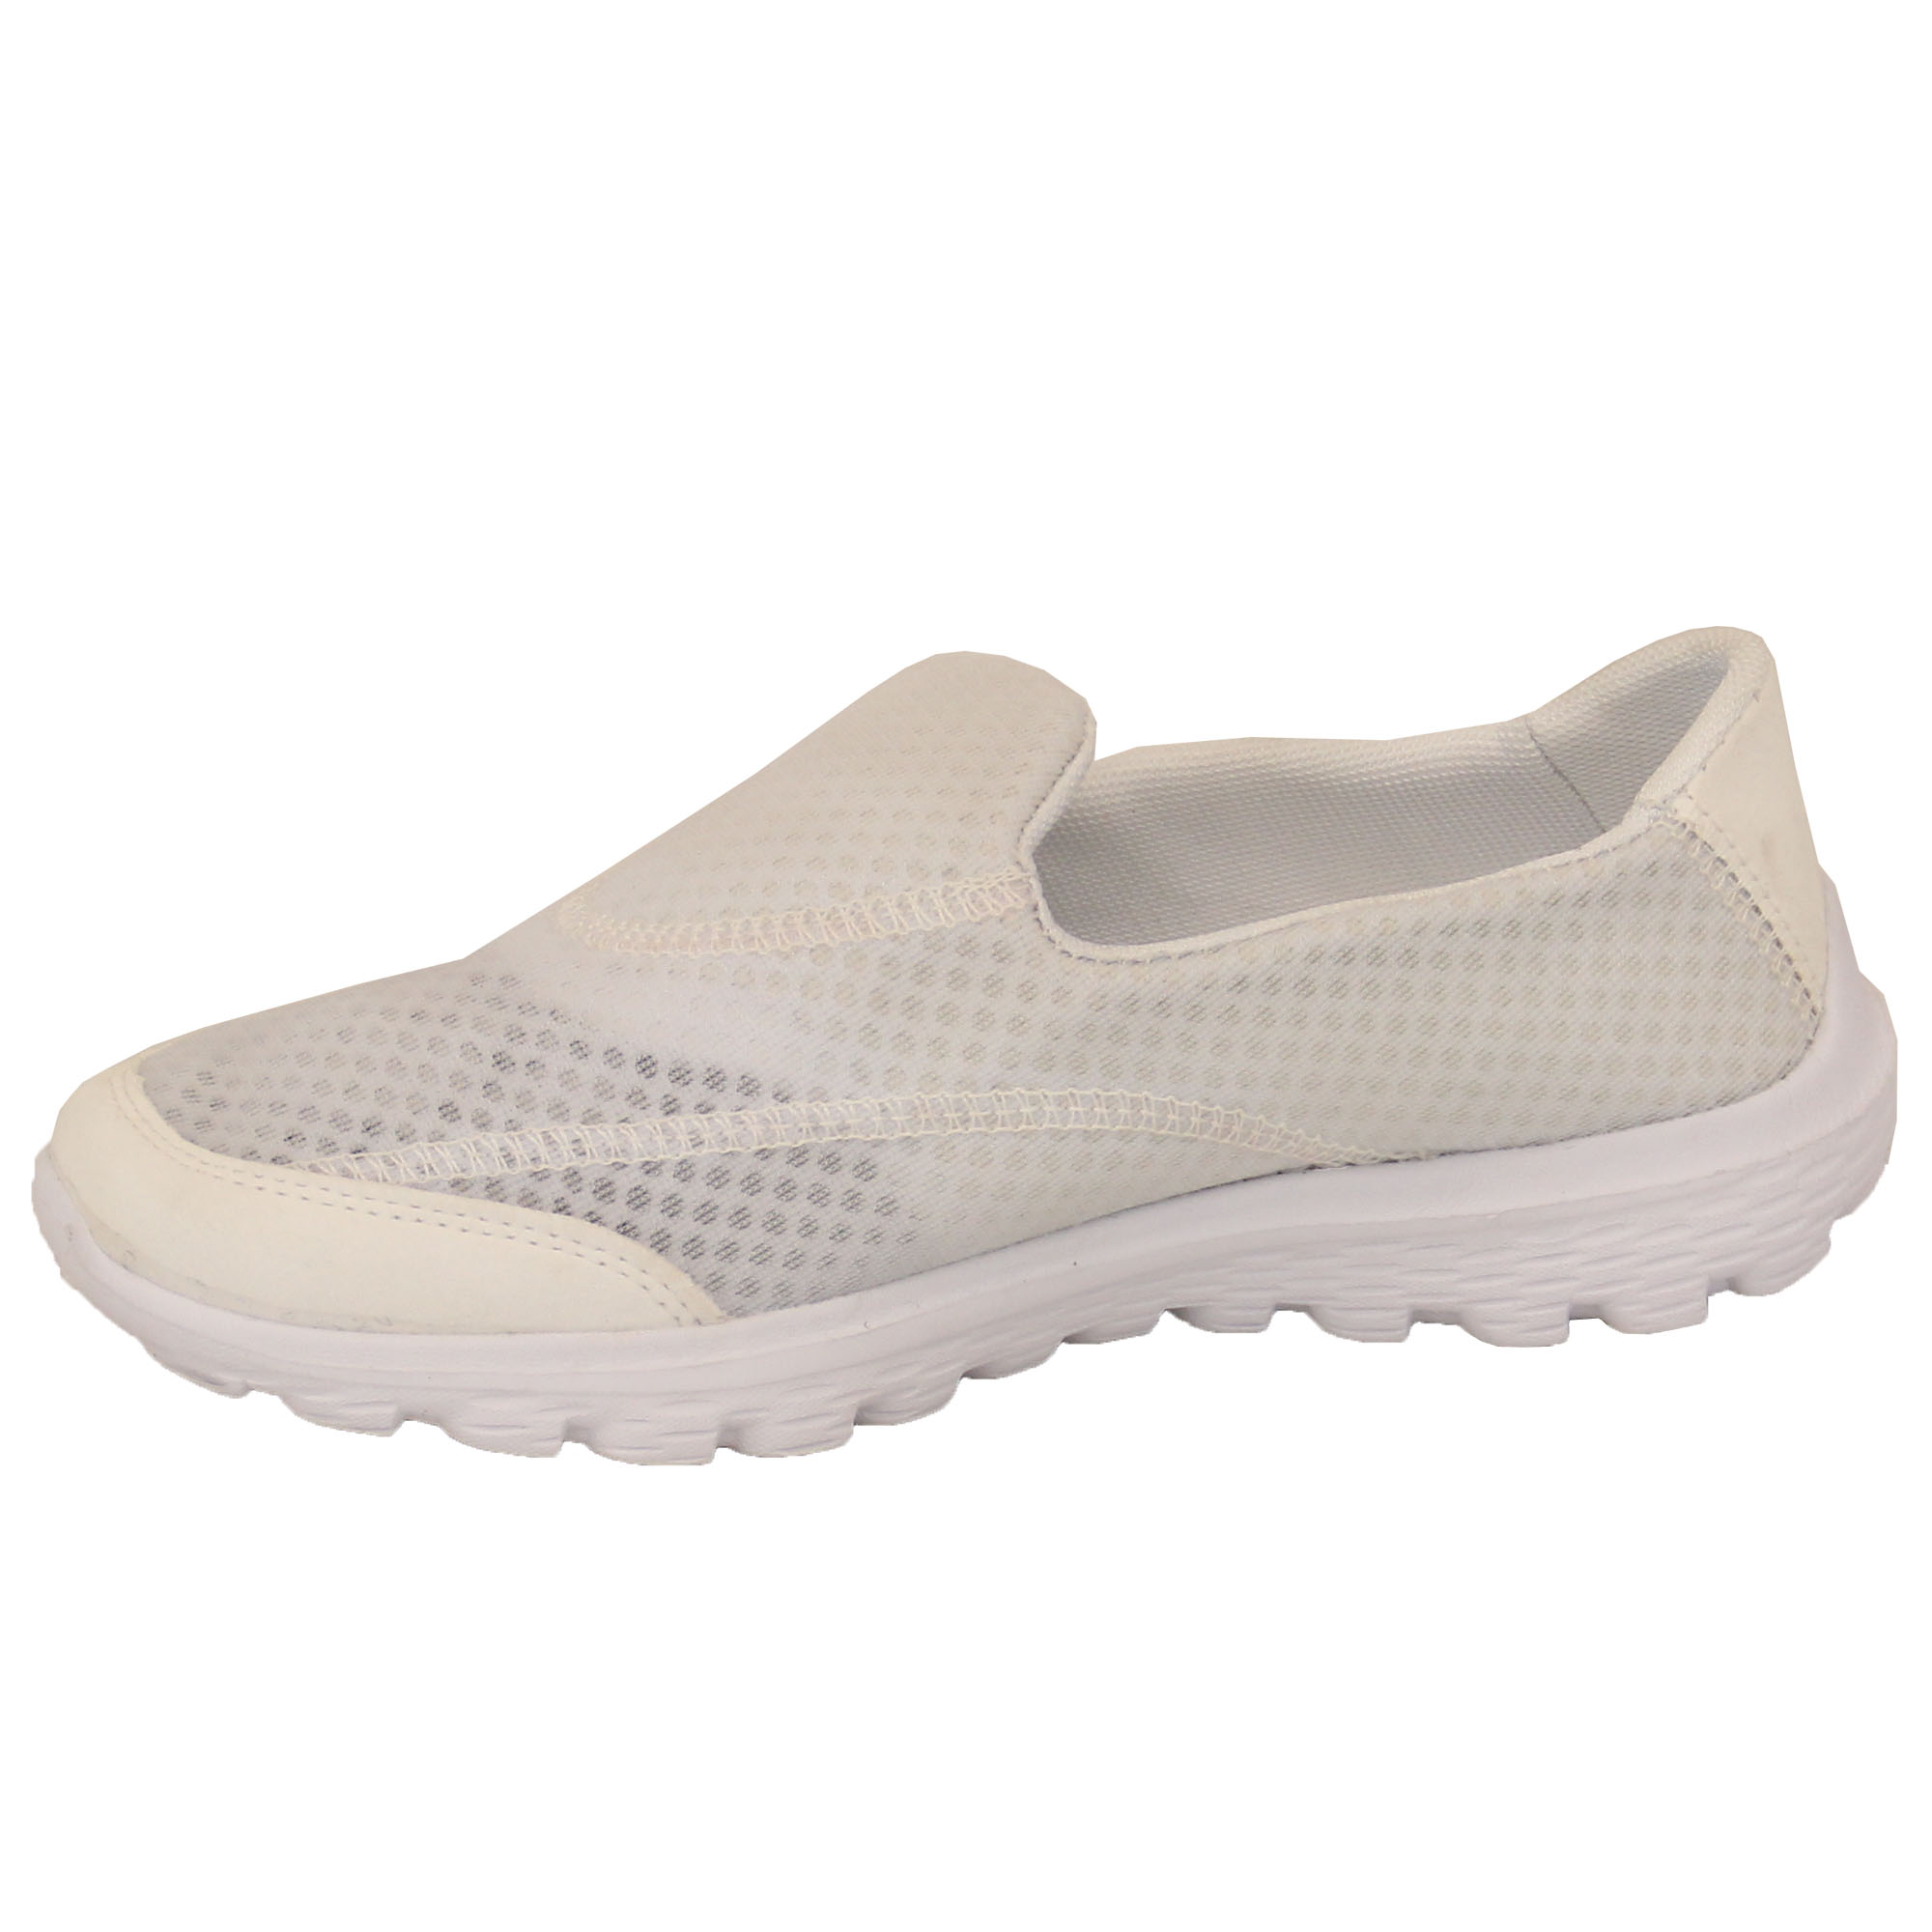 Find Women's Mesh Custom Shoes at palmmetrf1.ga Enjoy free shipping and returns with NikePlus.